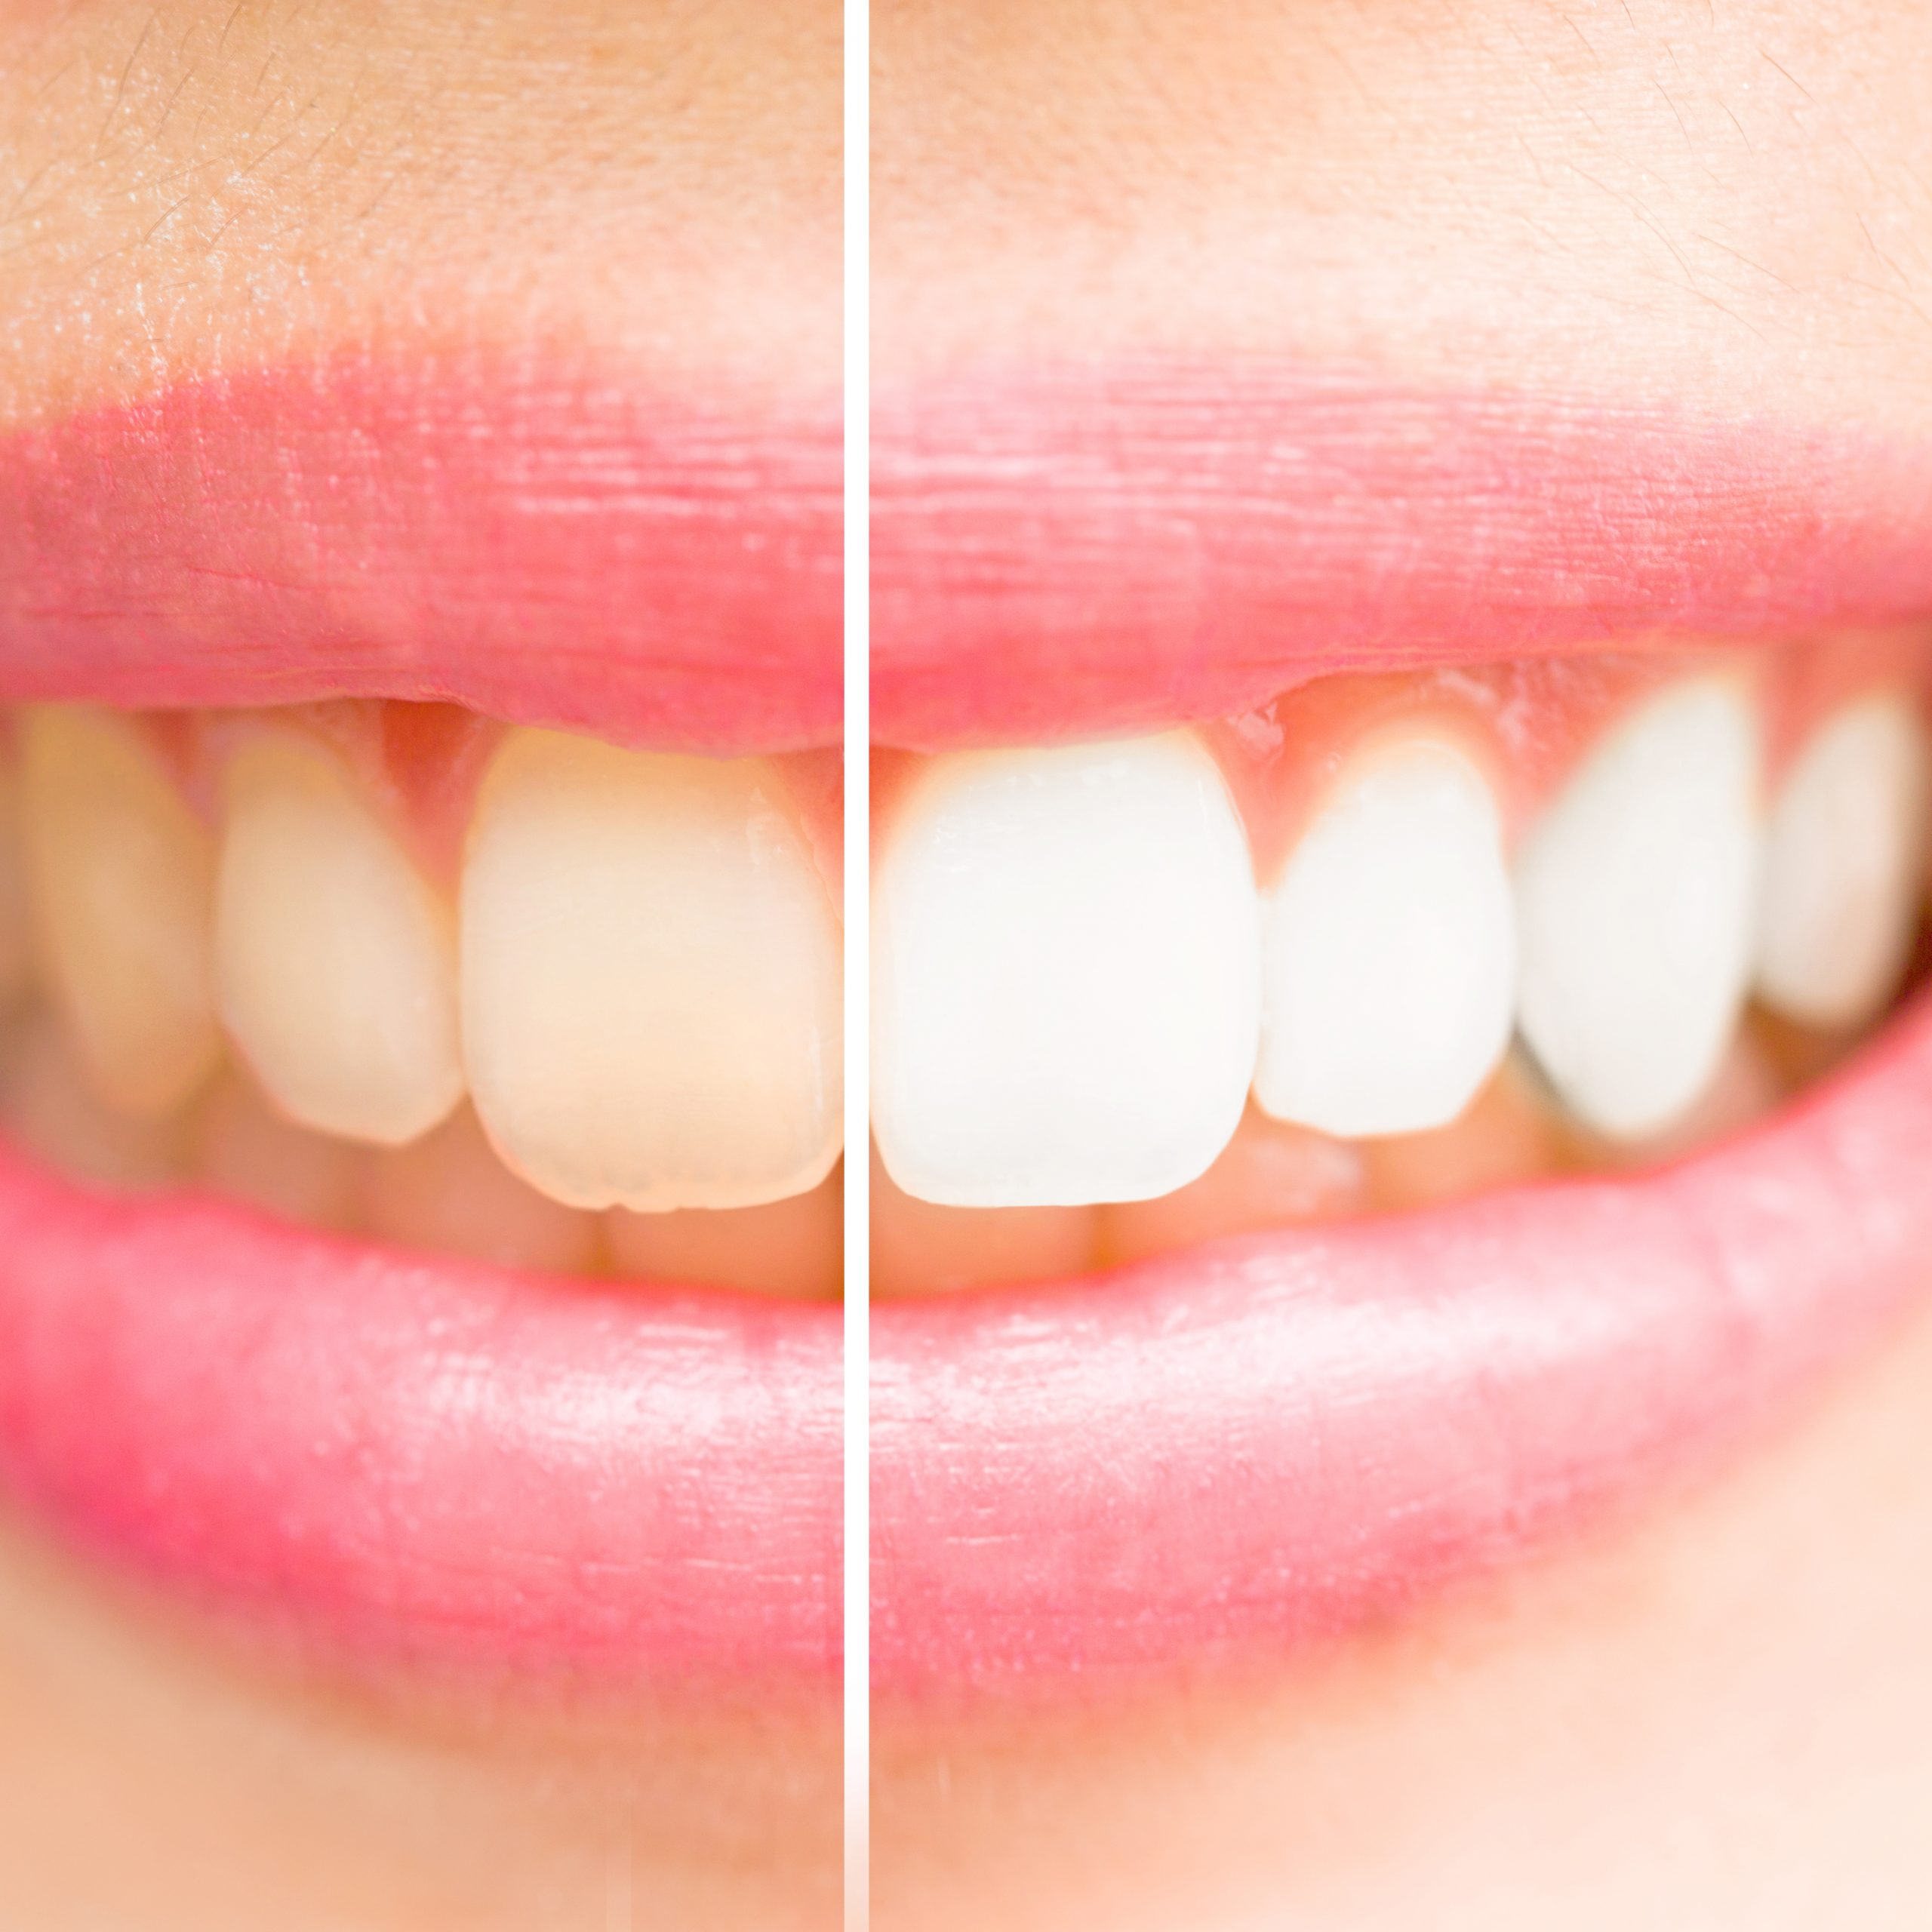 Teeth Whitening Norwich Before and After